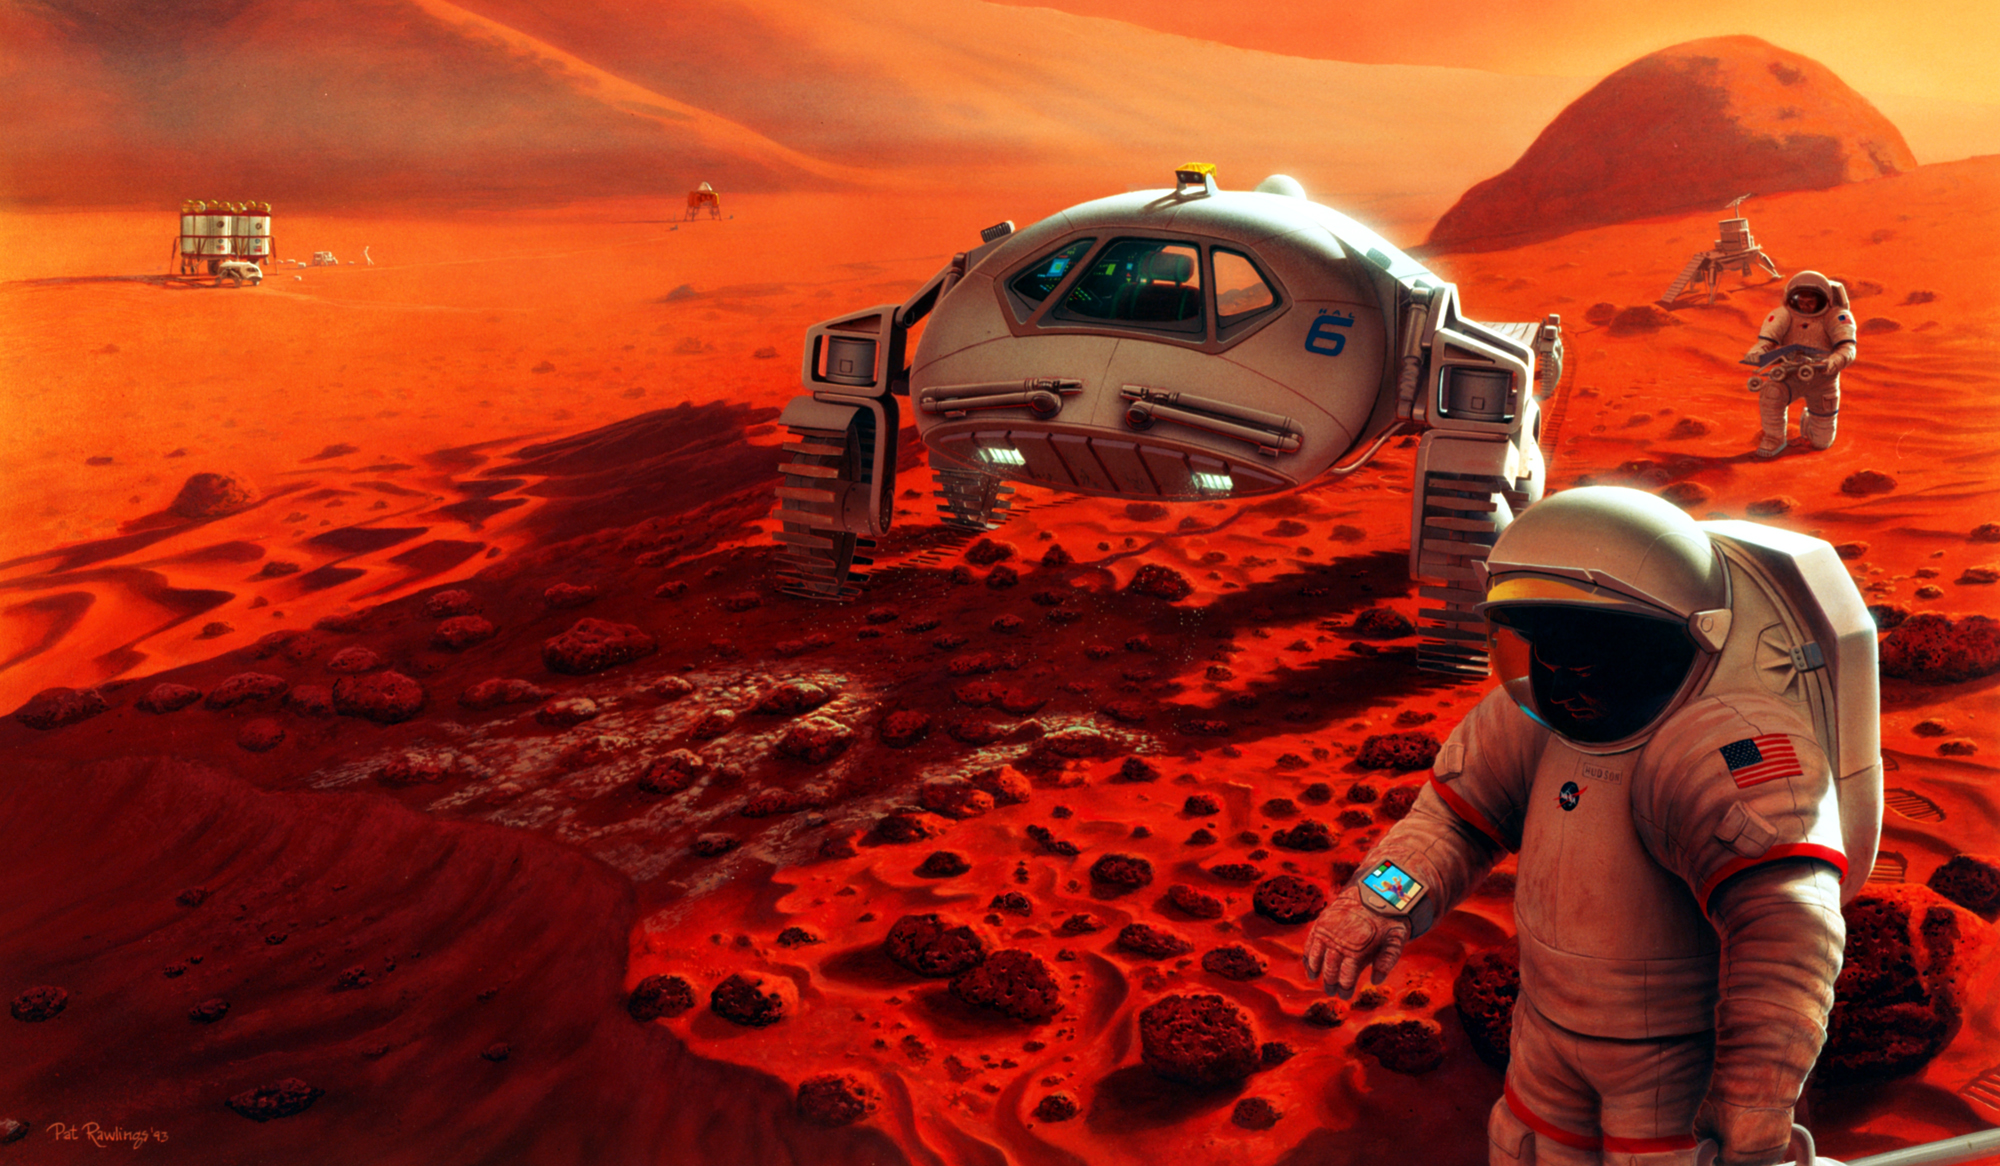 NASA Contest Wants Your Ideas to Keep Astronauts Safe on Mars